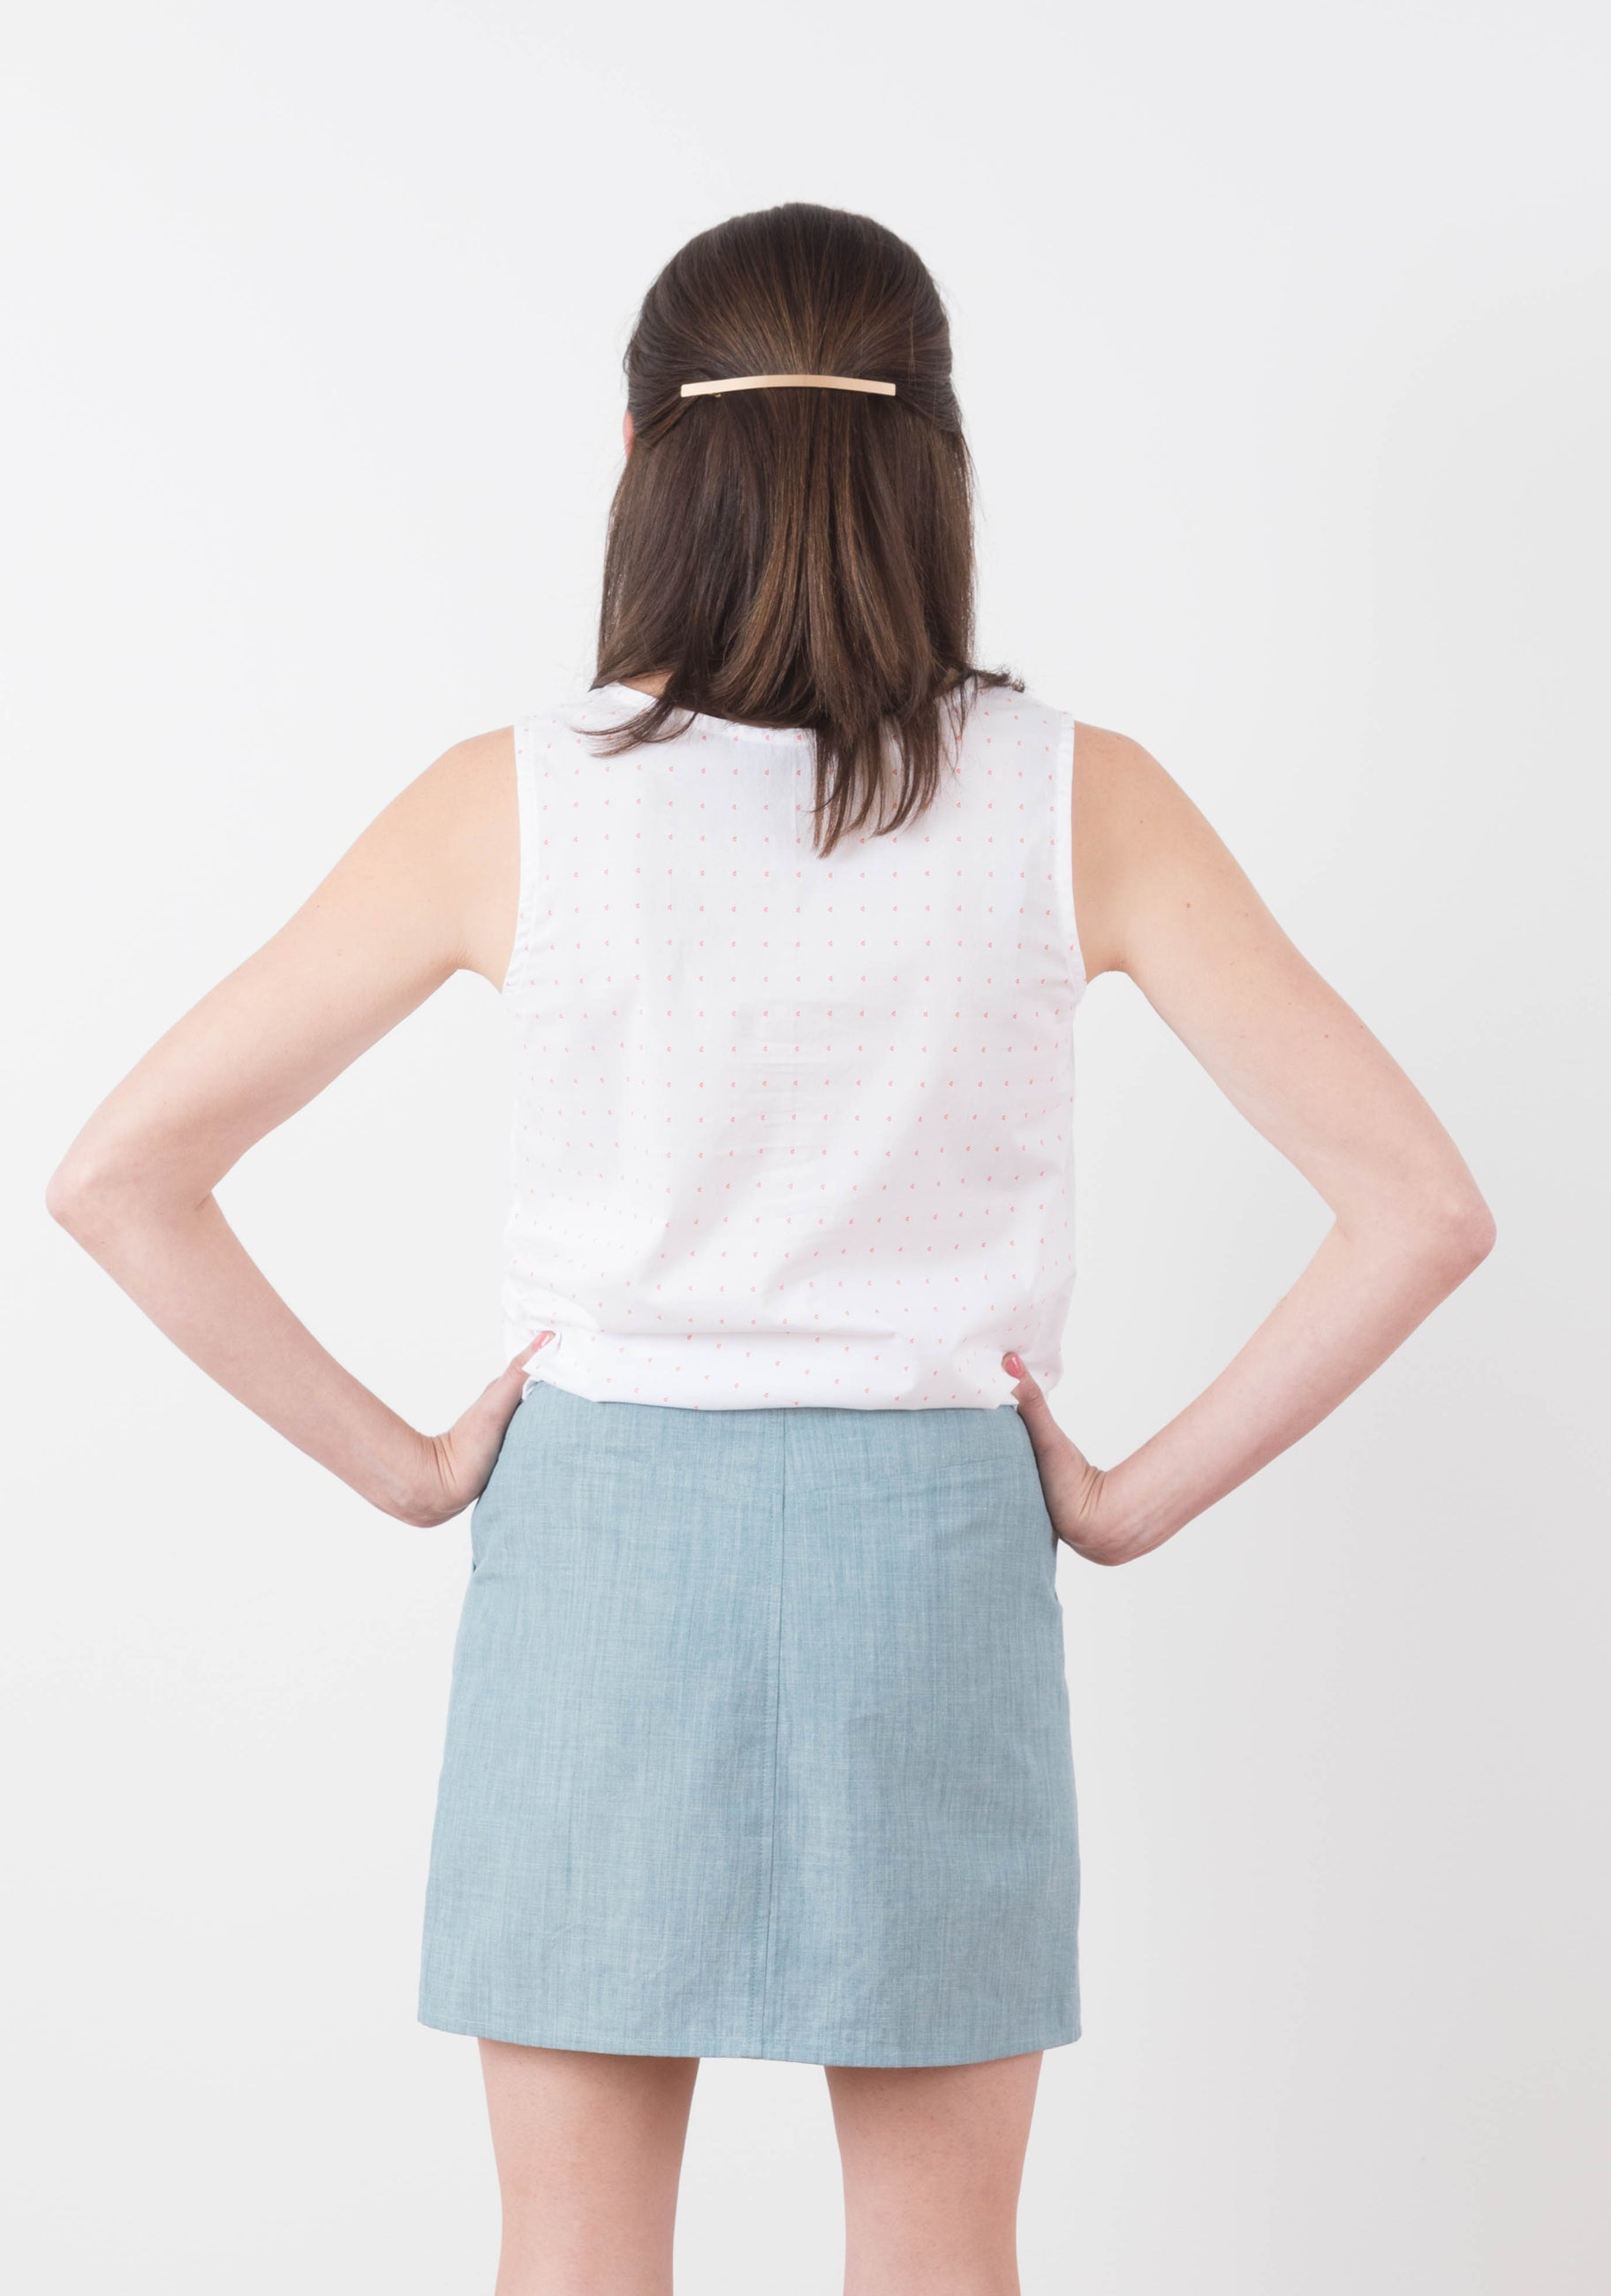 A New Denim Moss (and raglan tee & watson bra) | Grainline Studio